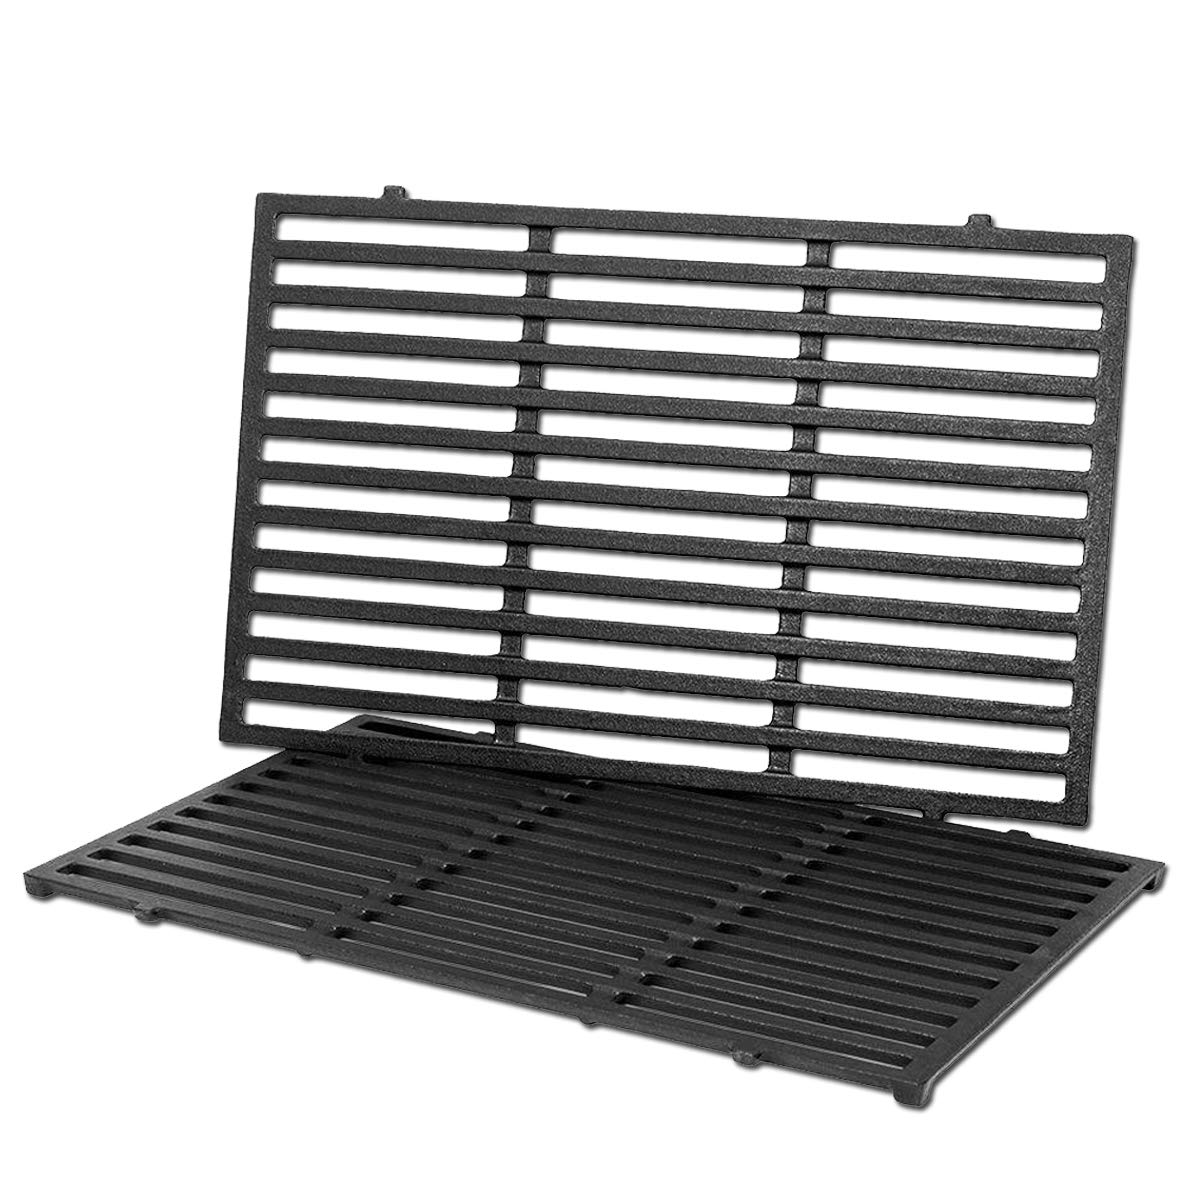 Uniflasy 17.5 Inch Cooking Grid Grates for Weber Spirit 300 Series, Spirit E/S 310, E/S 320, E/S 330, Spirit 700, Genesis 1000-3500, Genesis Gold Silver Platinum B/C, Weber 900, Replaces for 7638 7639 by Uniflasy